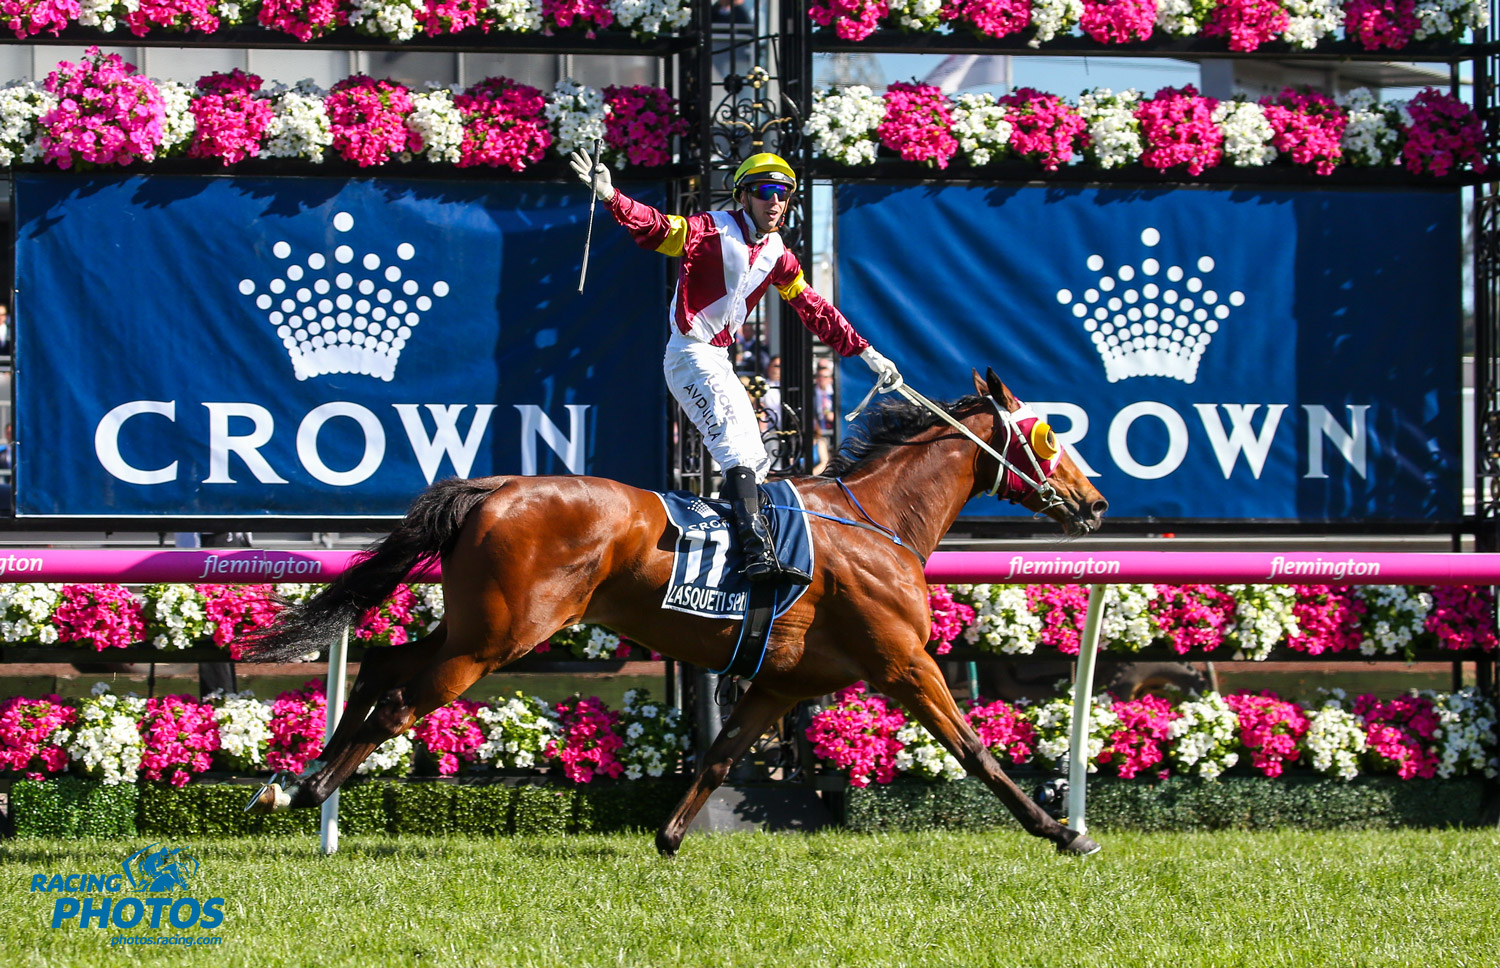 Image courtesy Racing Photos - The stewards took a dim view of Brenton Avdulla's antics as Lasqueti Spirit won the Crown Oaks.